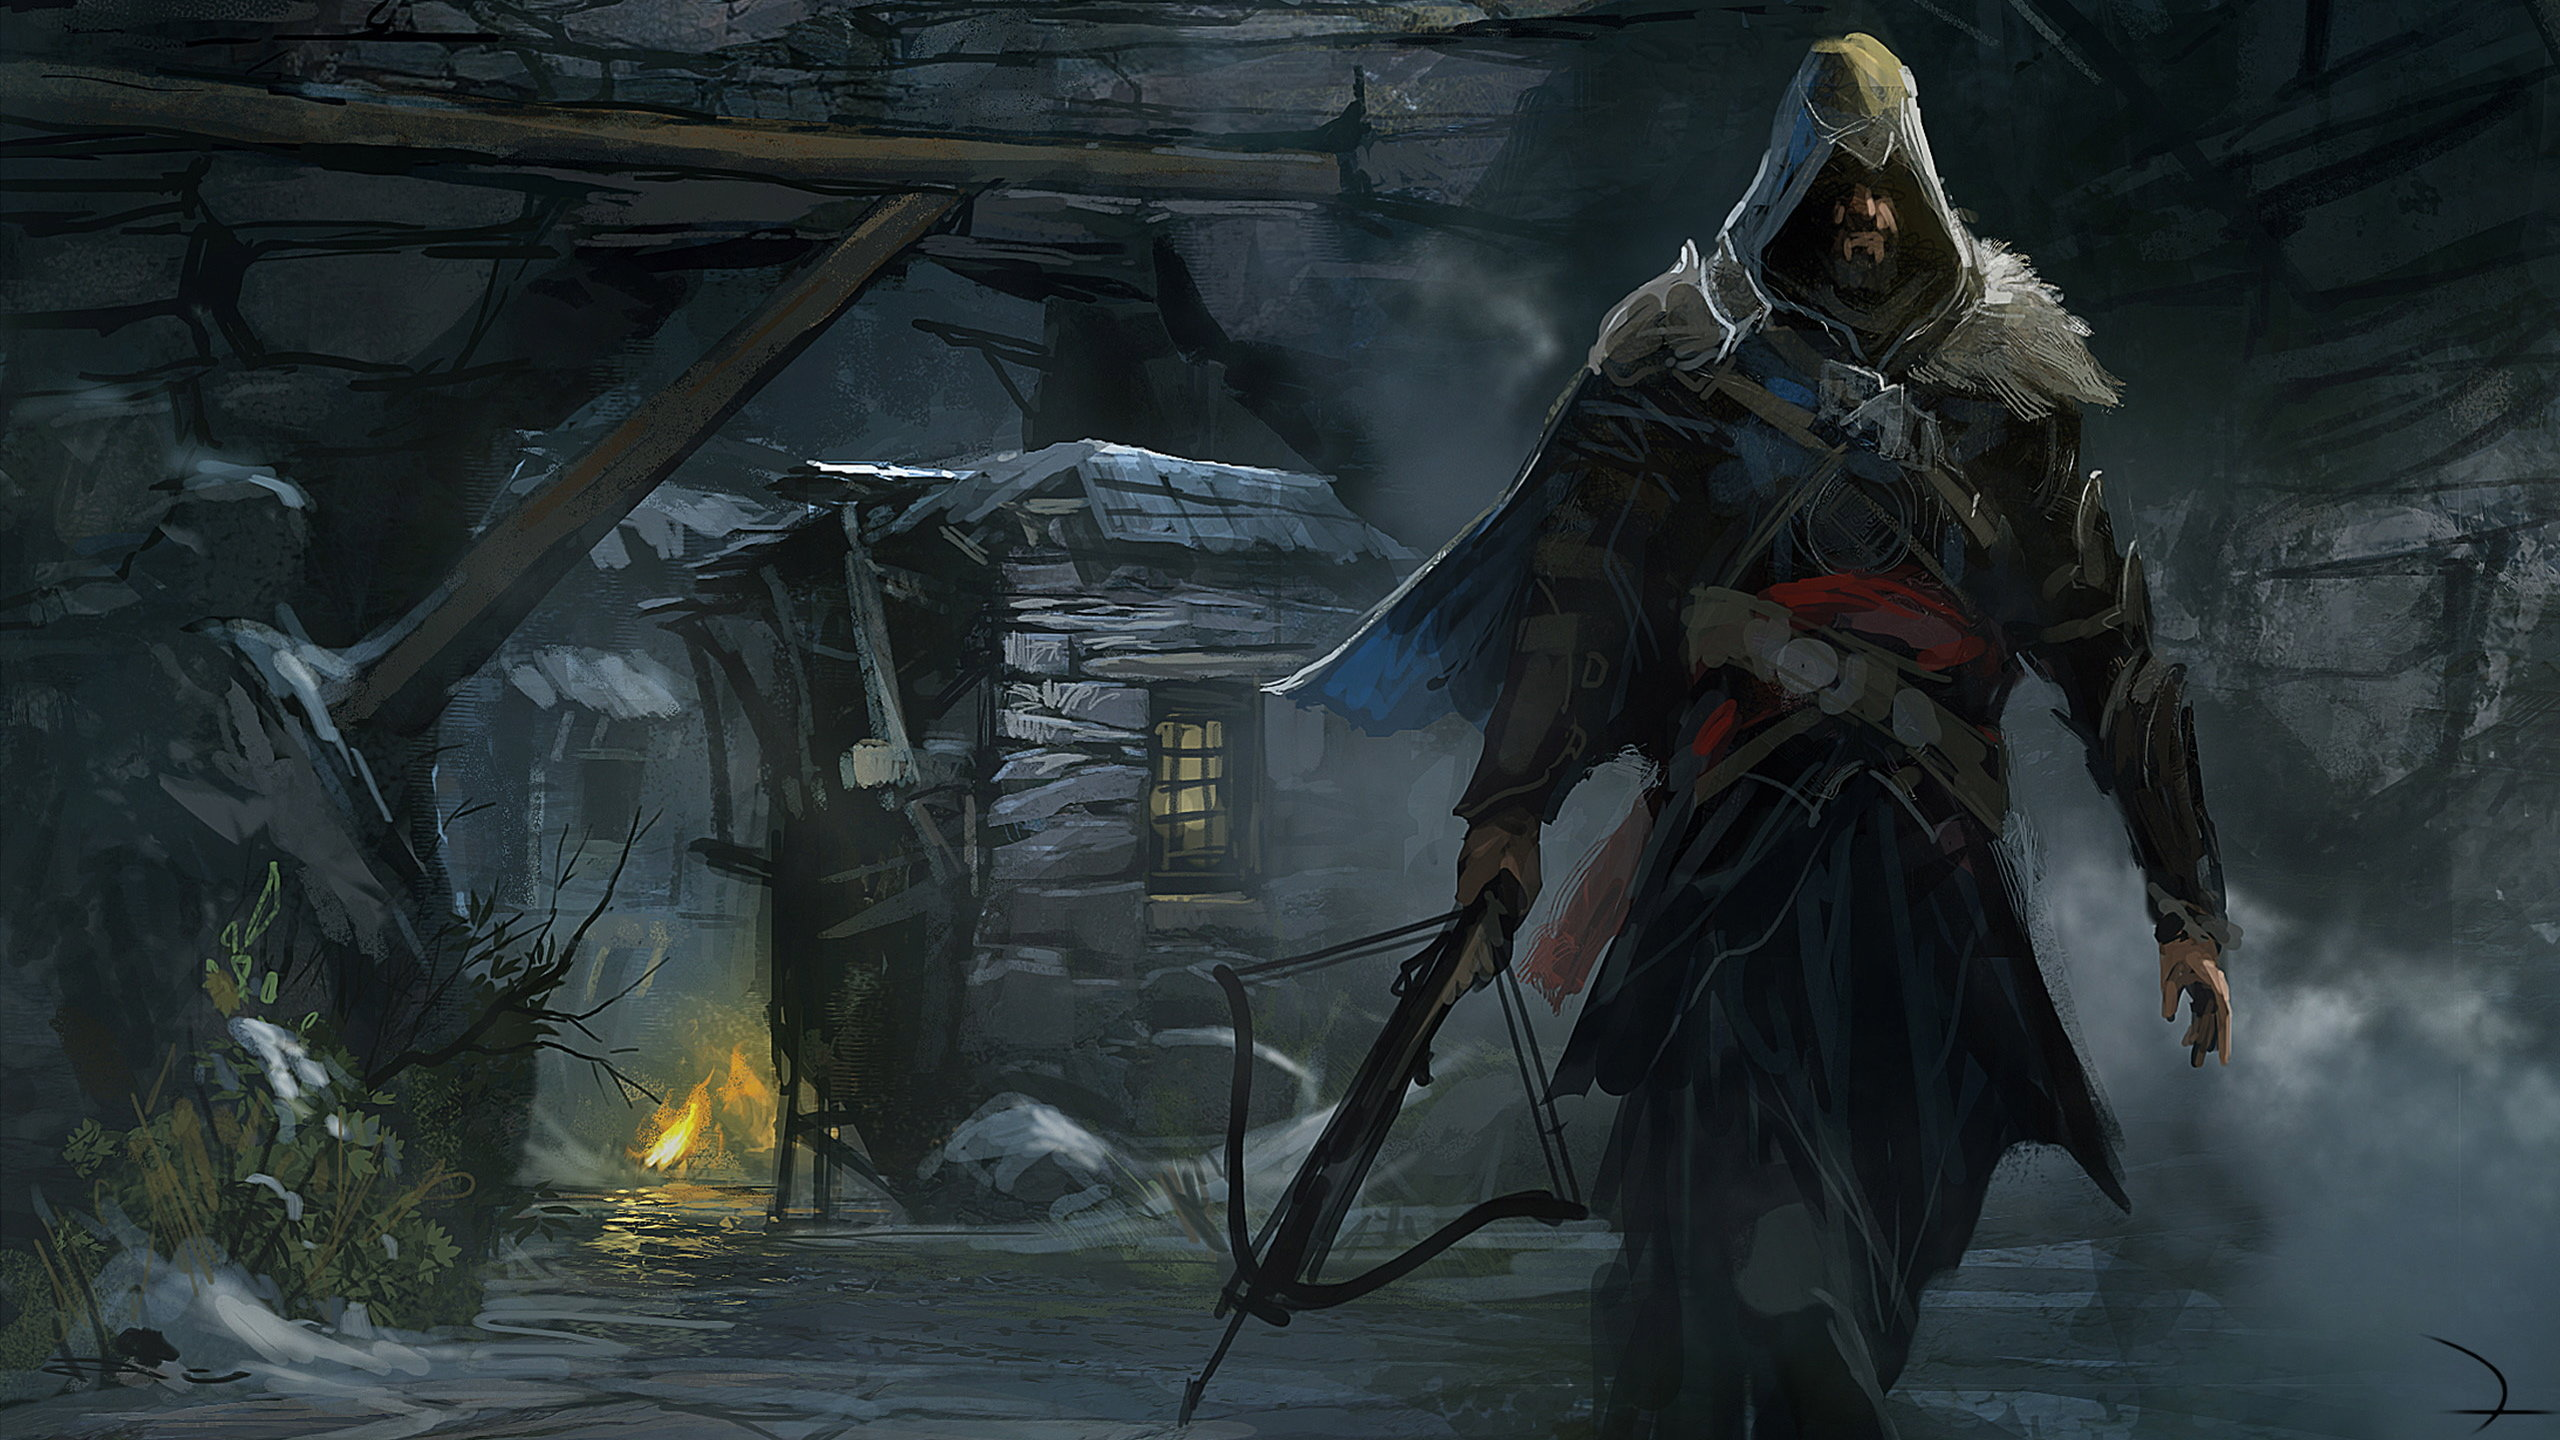 Free Assassins Creed Revelations High Quality Wallpaper Id